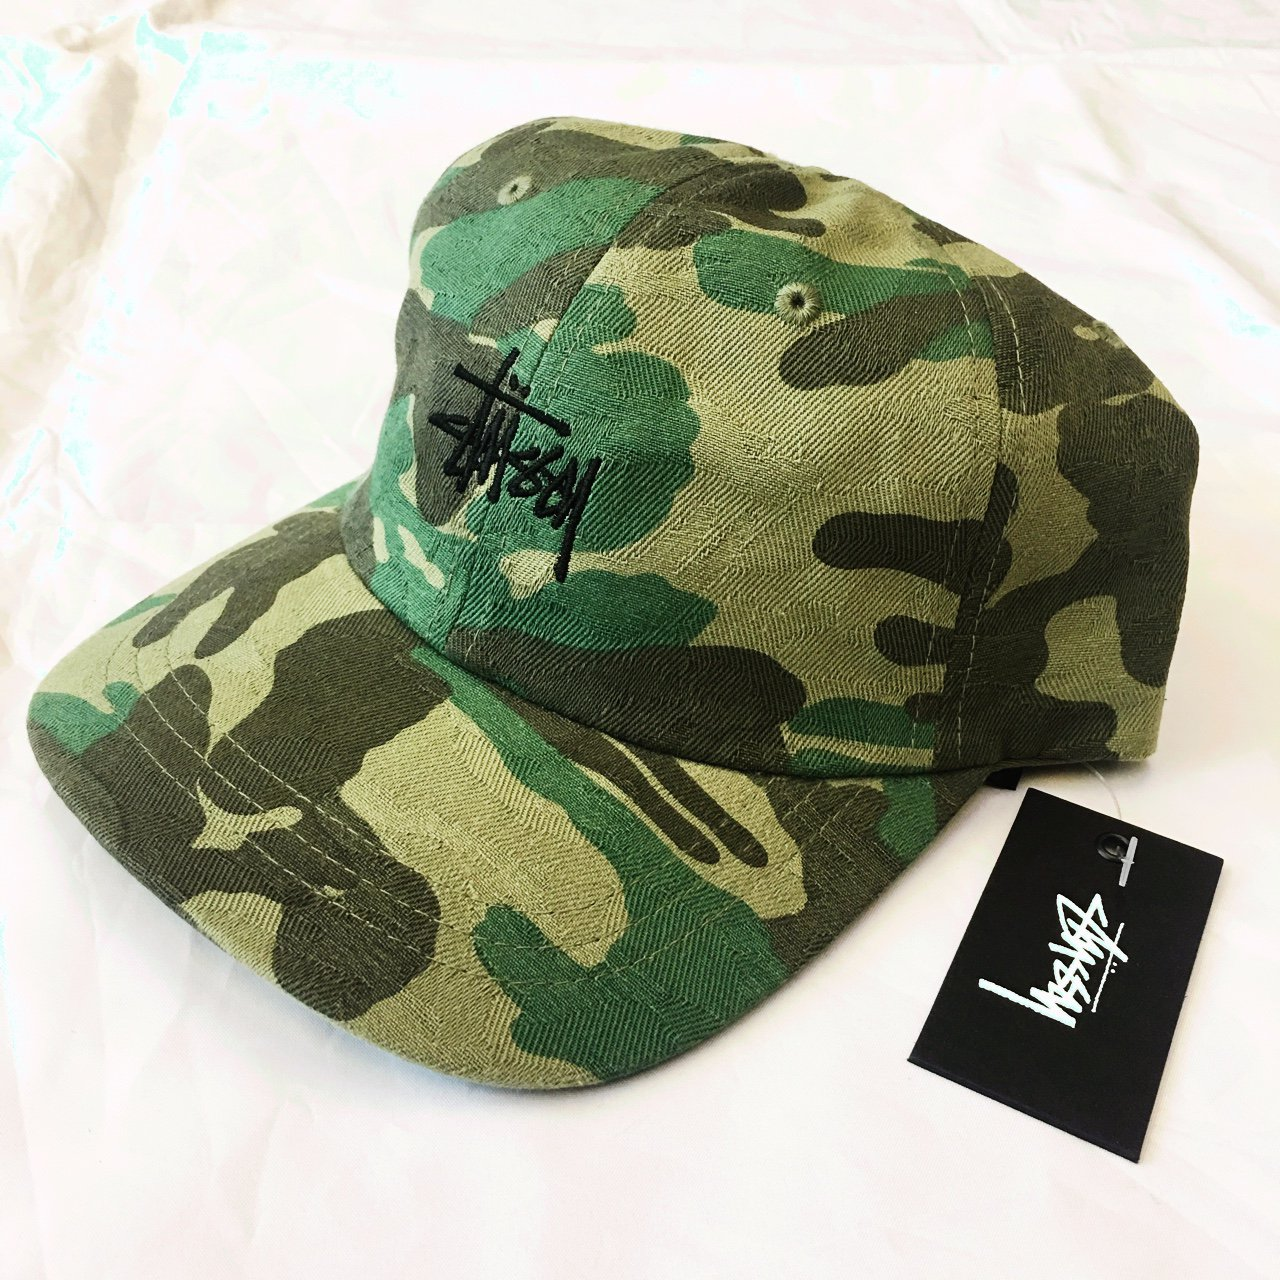 Stussy Strap Back Curbed Peak Camo Hat Brand New With Tags - Depop 2d09c91370a